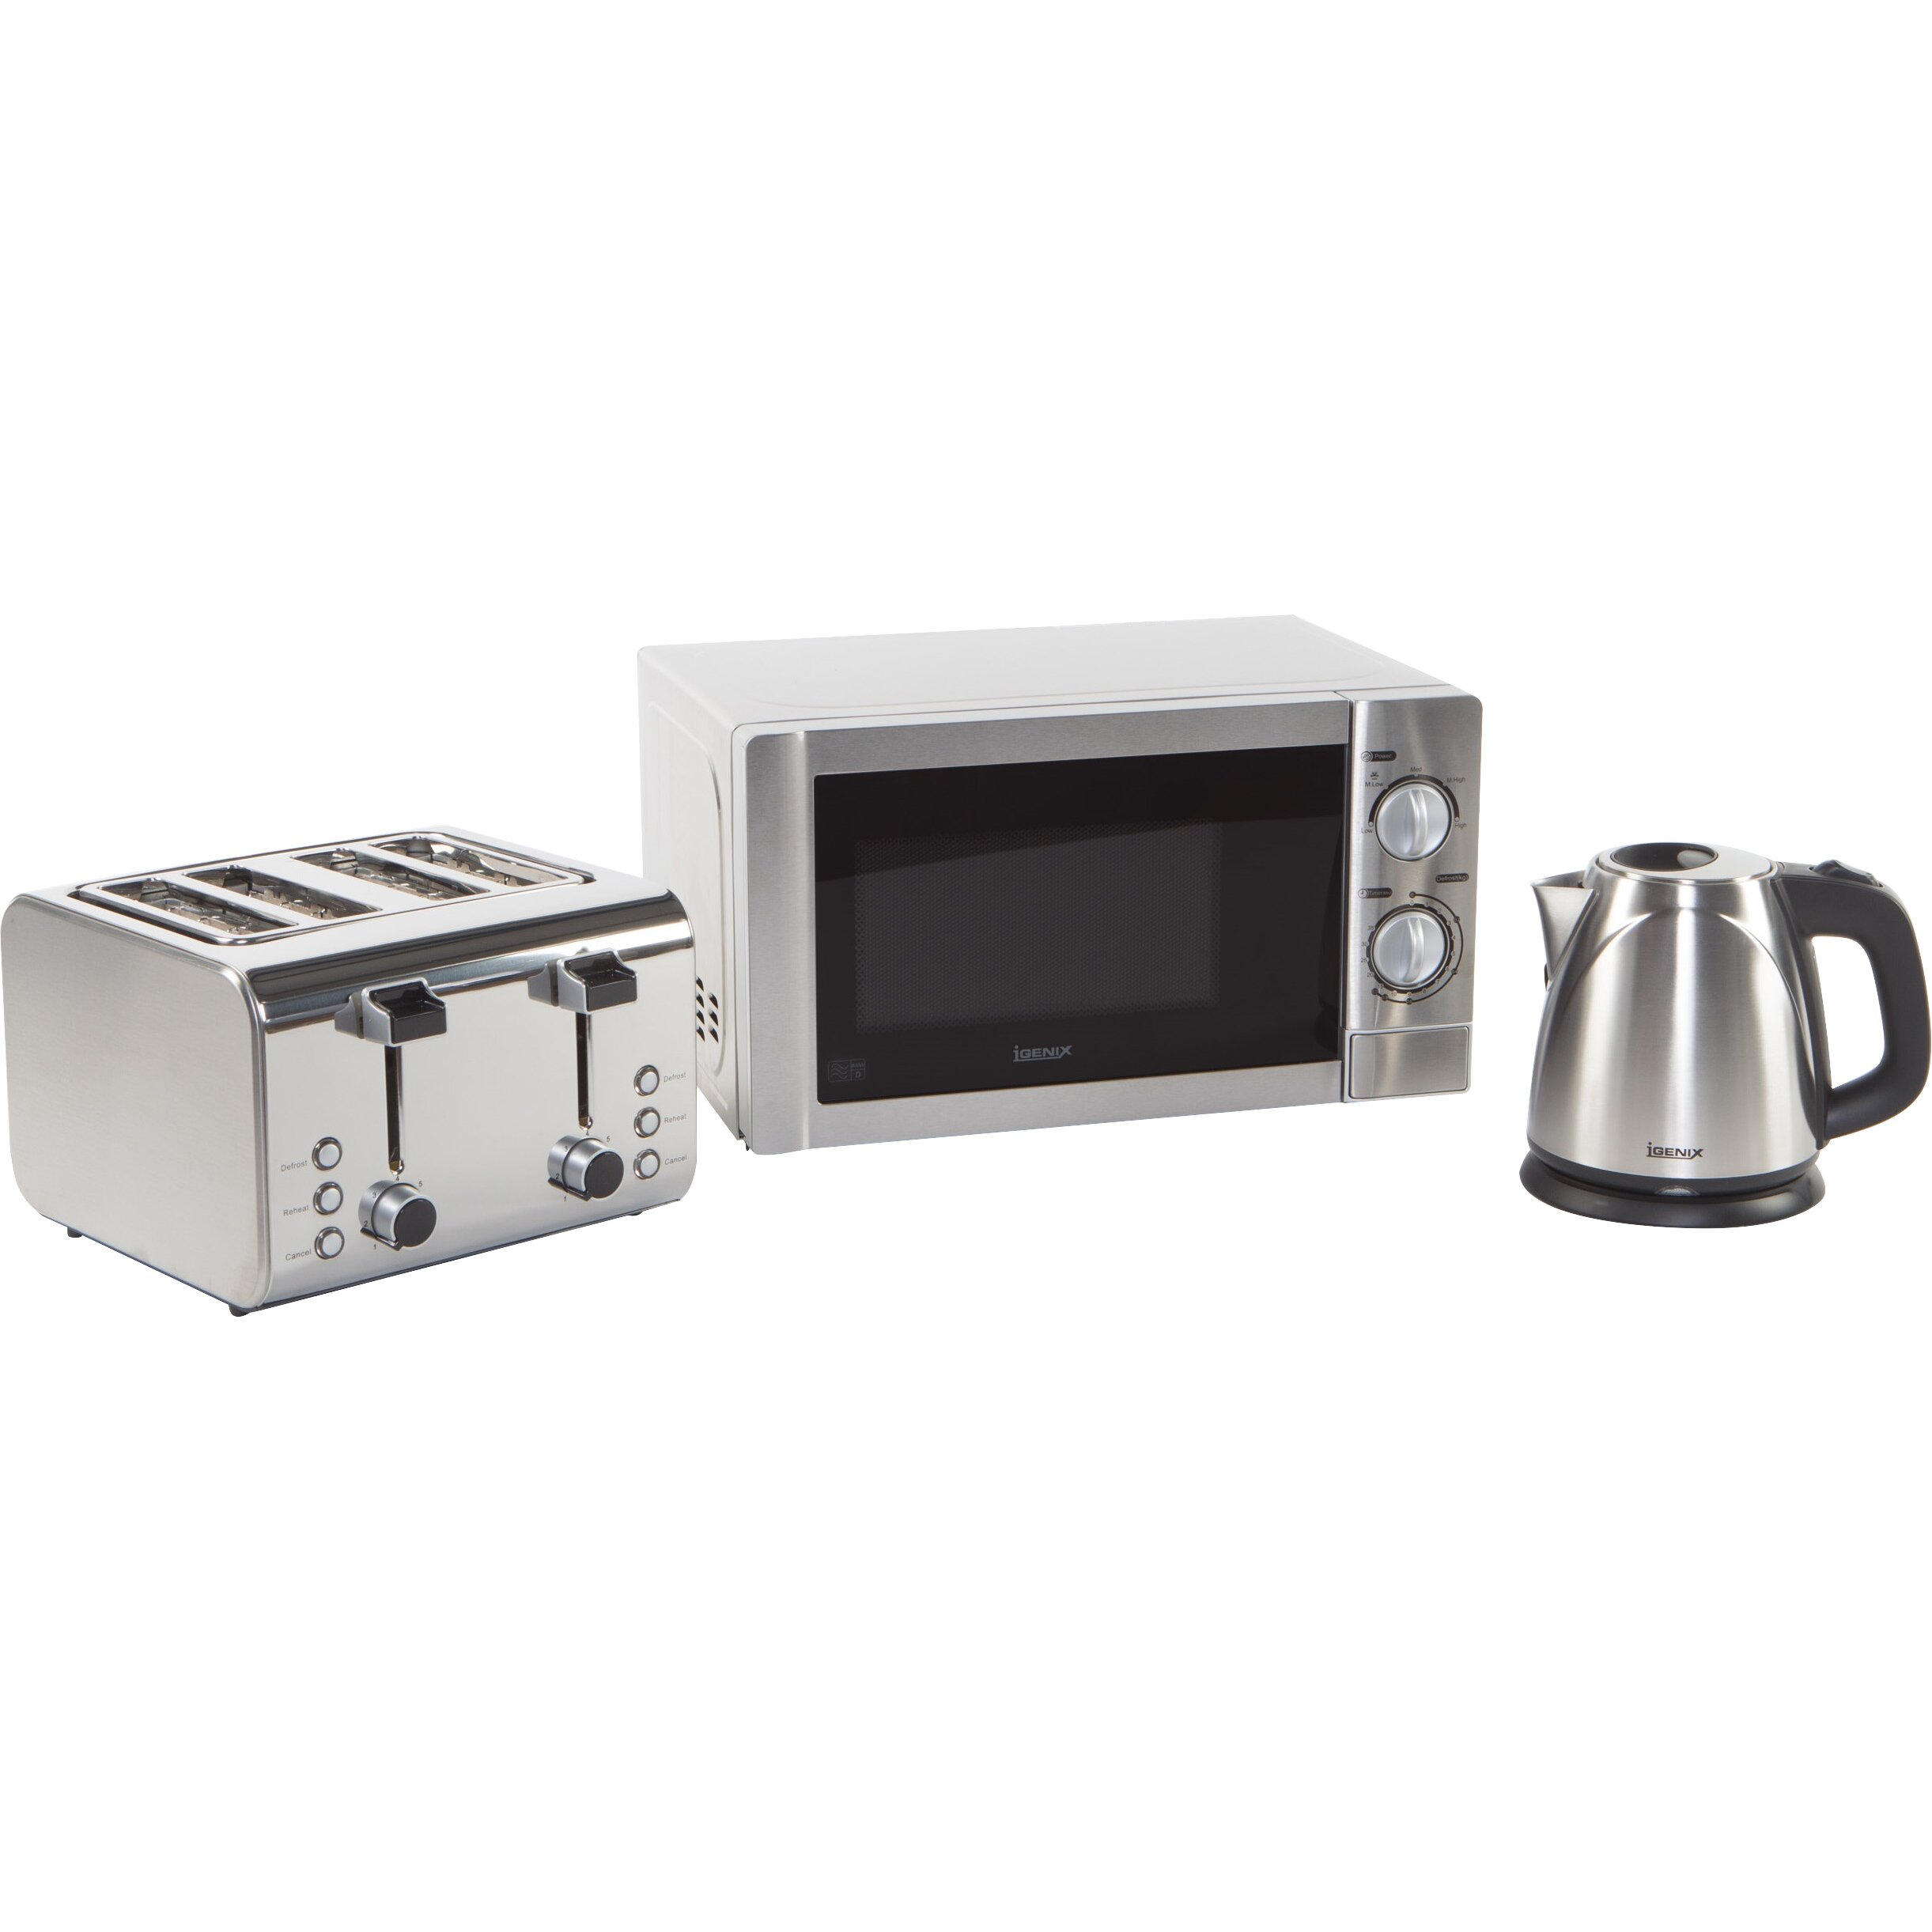 Microwave And Toaster In 1 ~ Igenix l w countertop microwave with kettle and